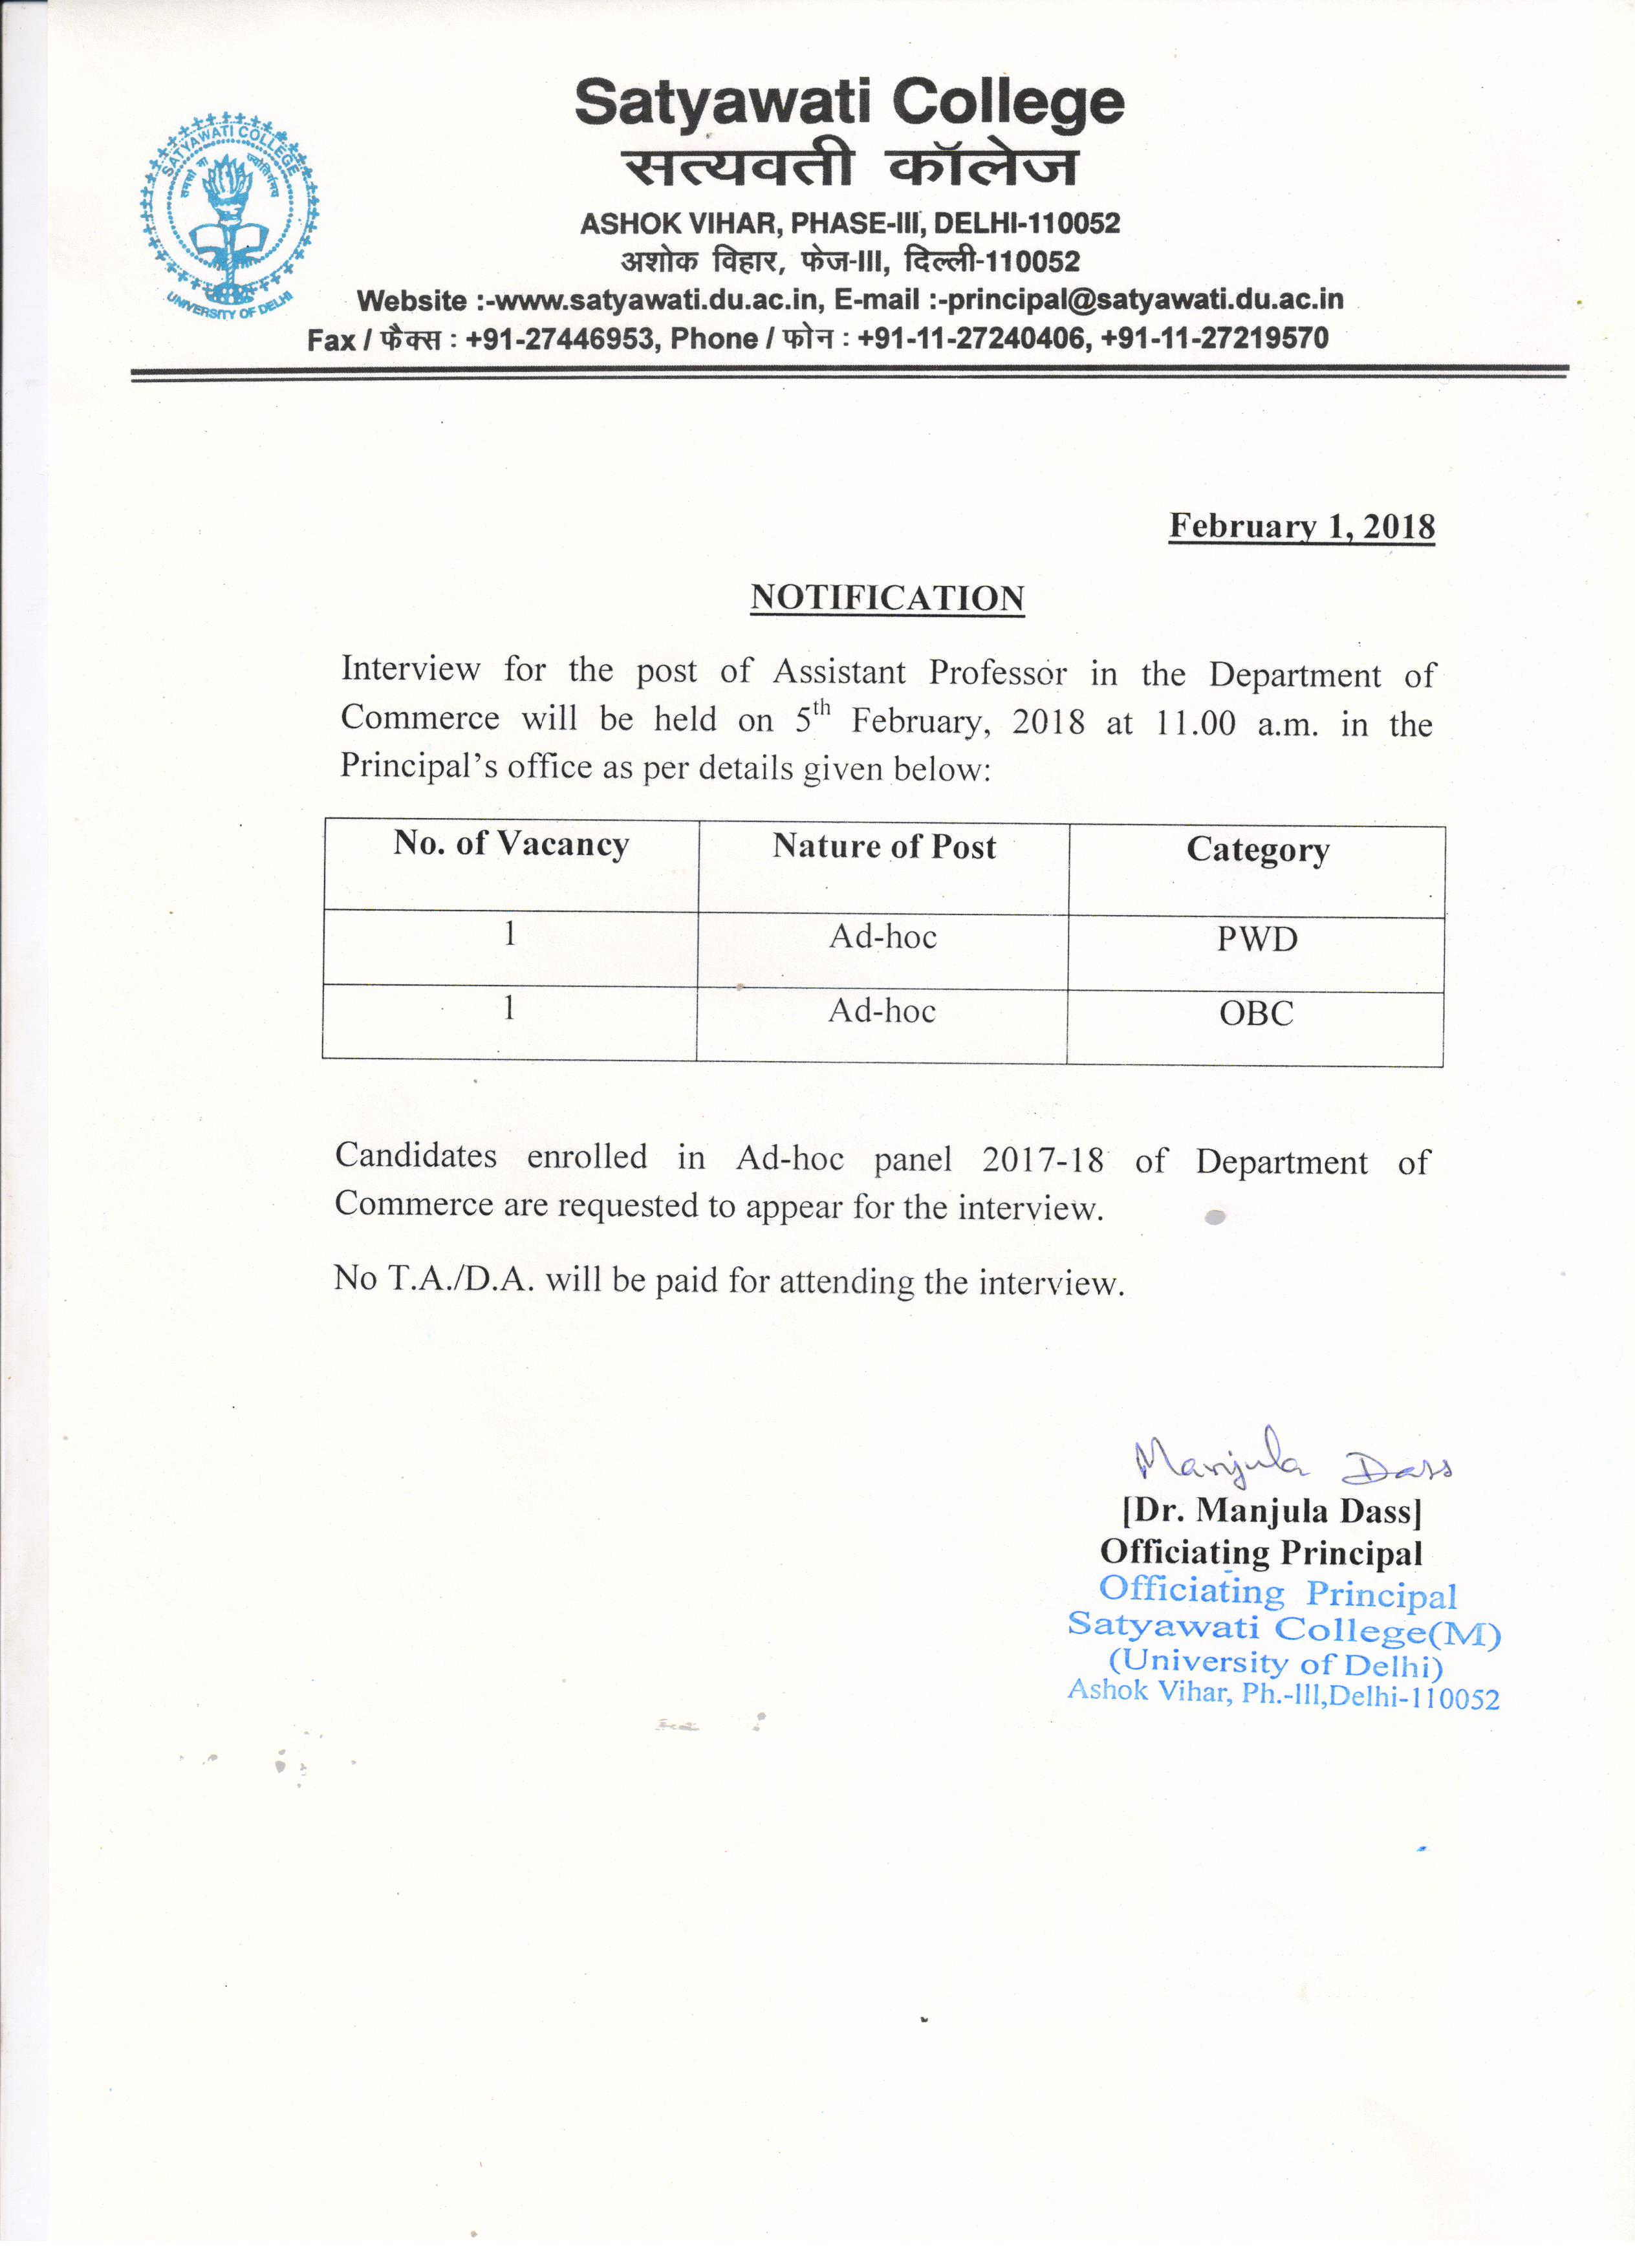 Satyawati college interview for the post of assistant professor in the depatment of commerce stopboris Gallery